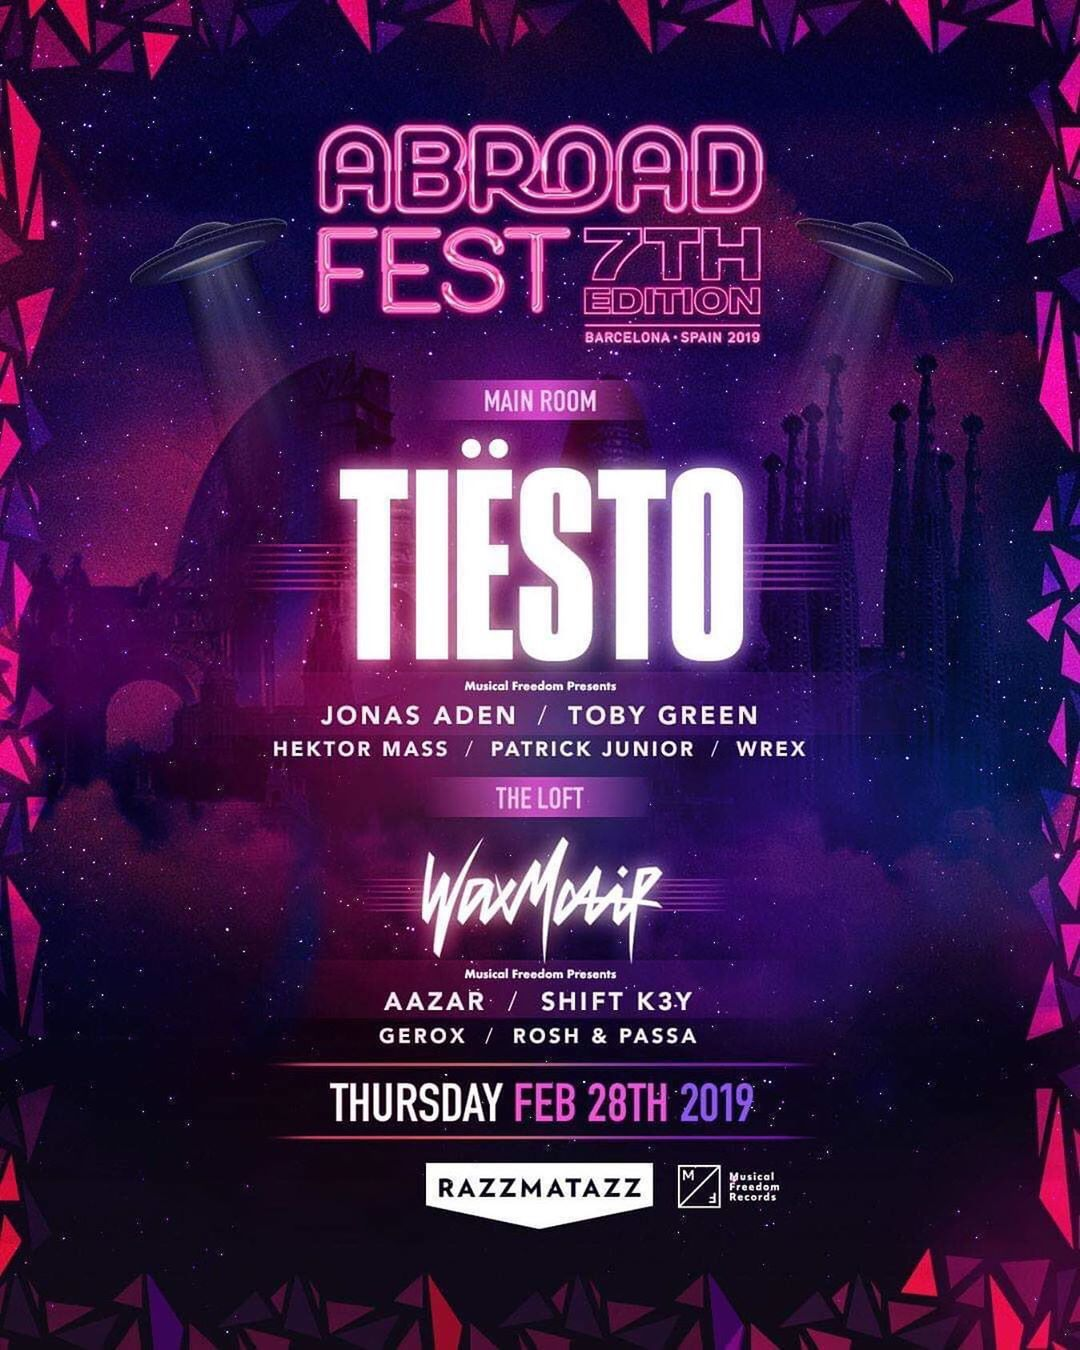 Tiësto photos |  Abroad Festival | Barcelona, Spain - February 28, 2019